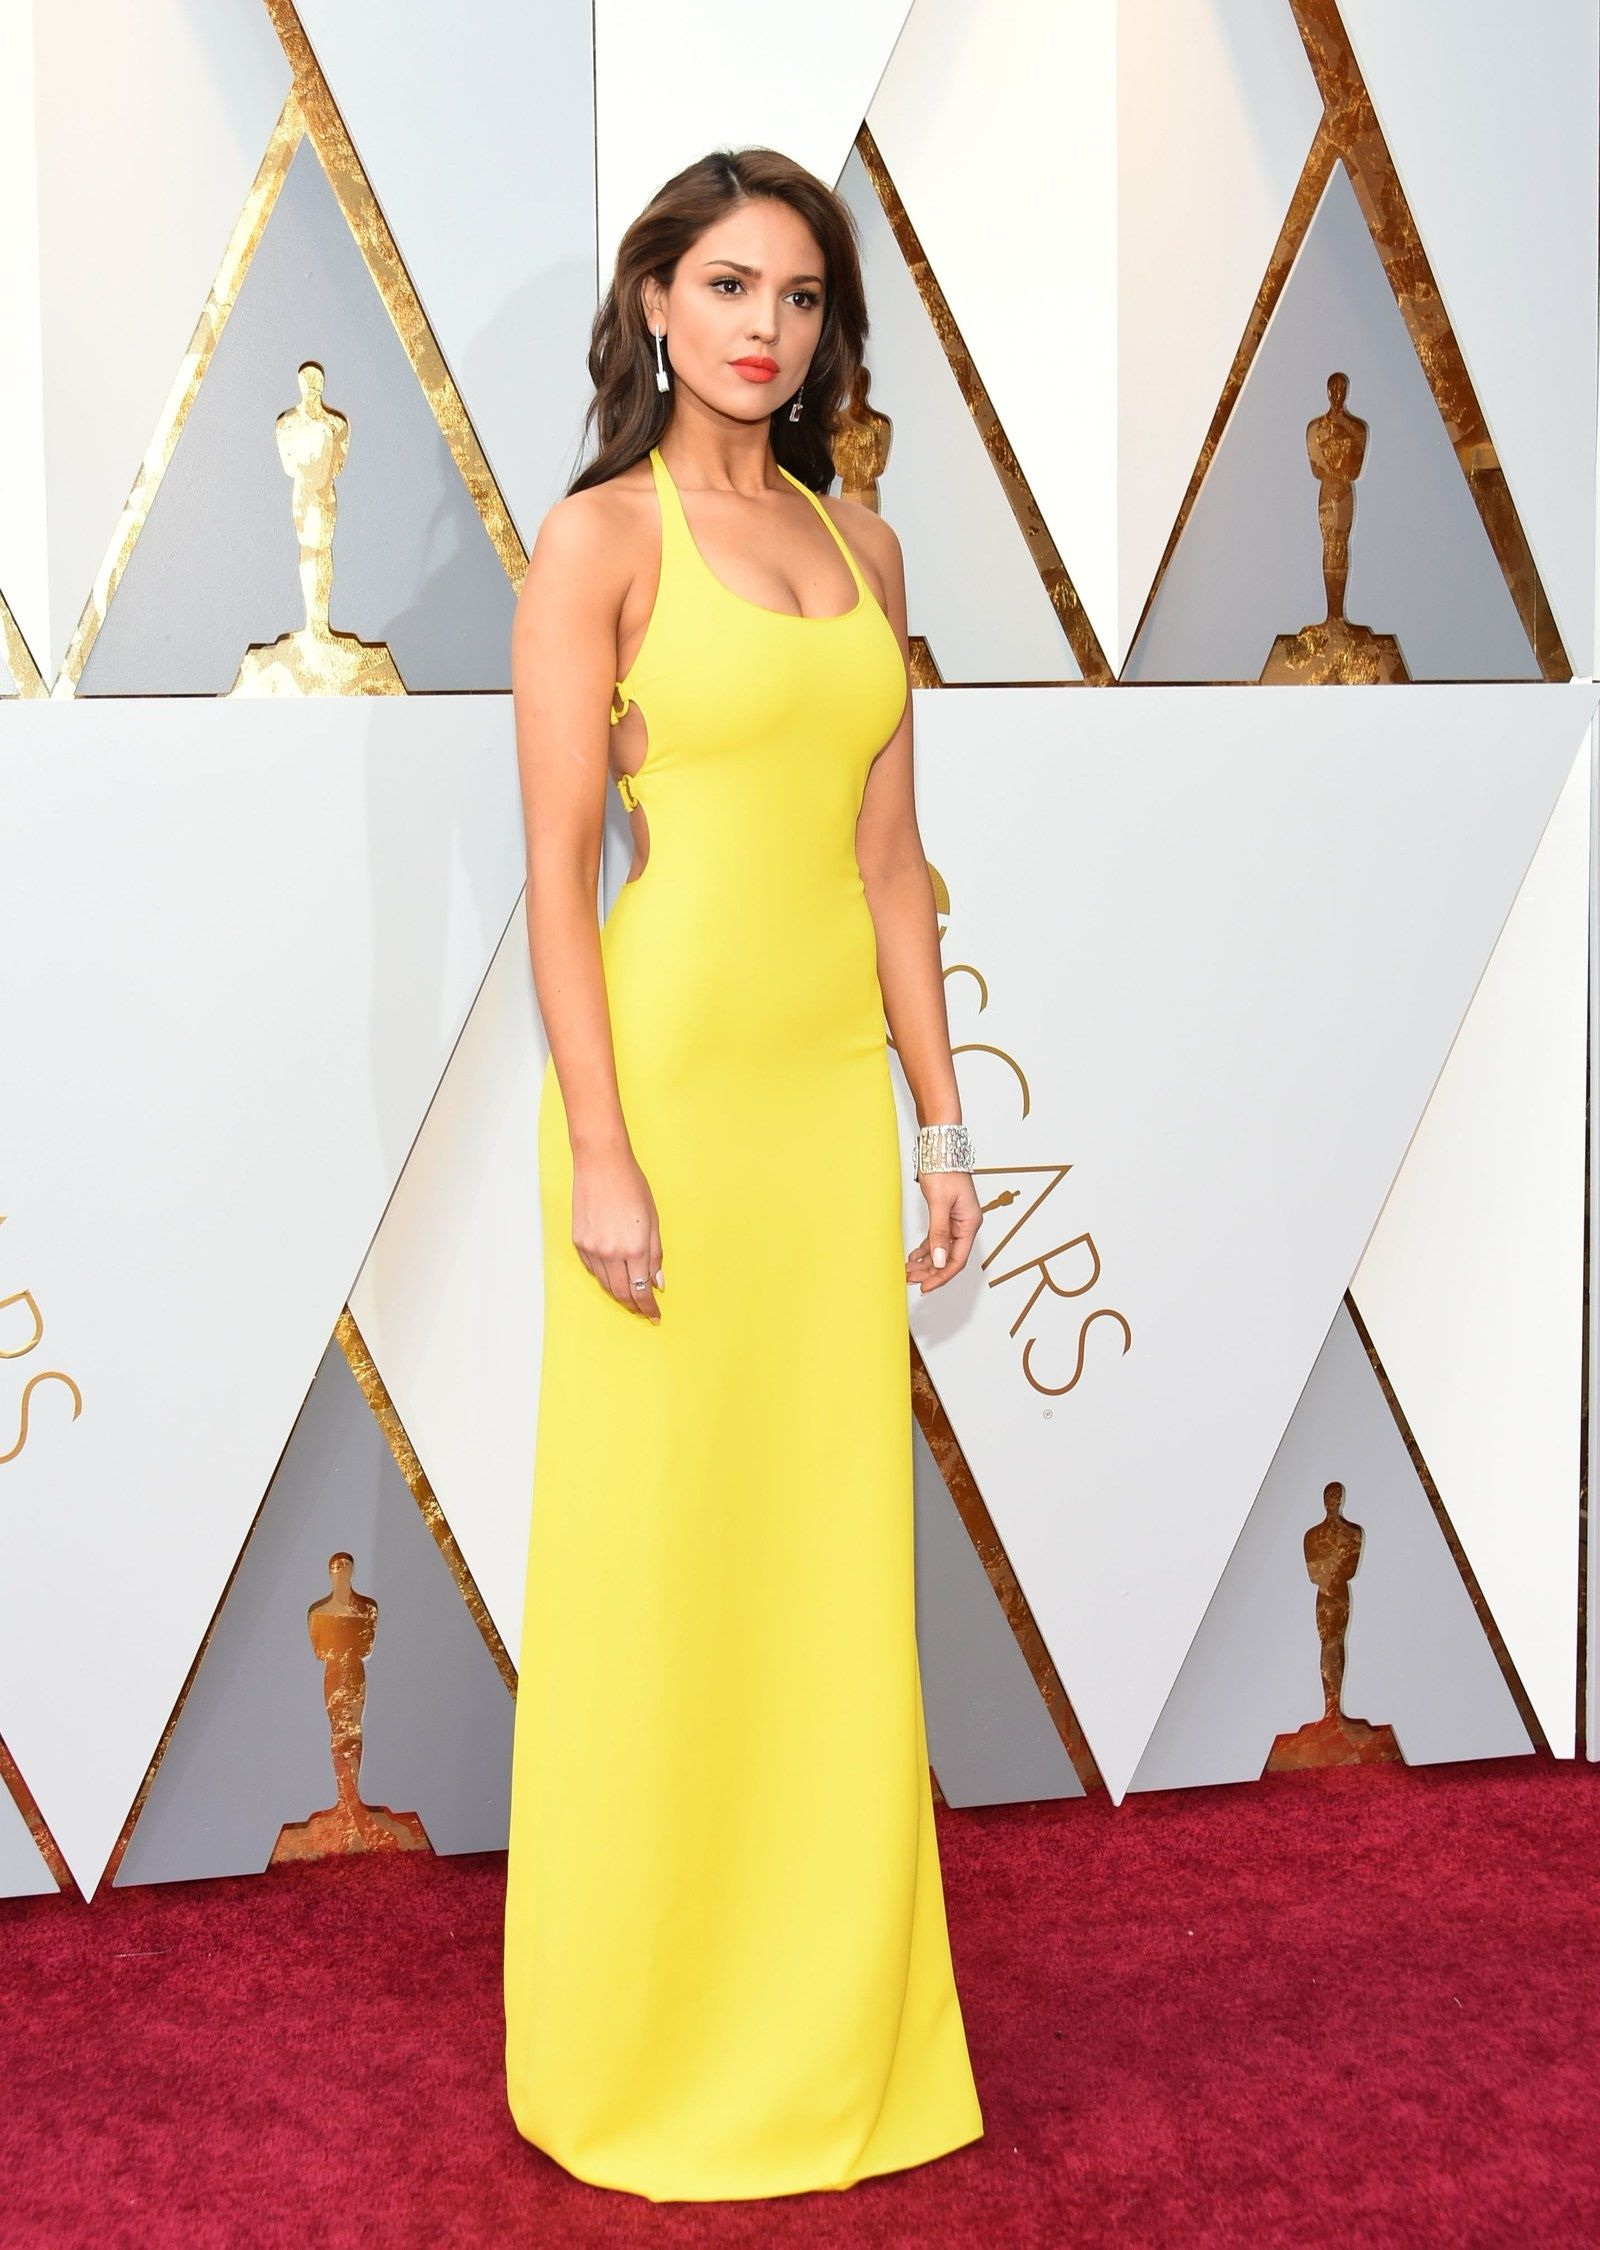 All Of The Looks On The Oscars Red Carpet Eiza González